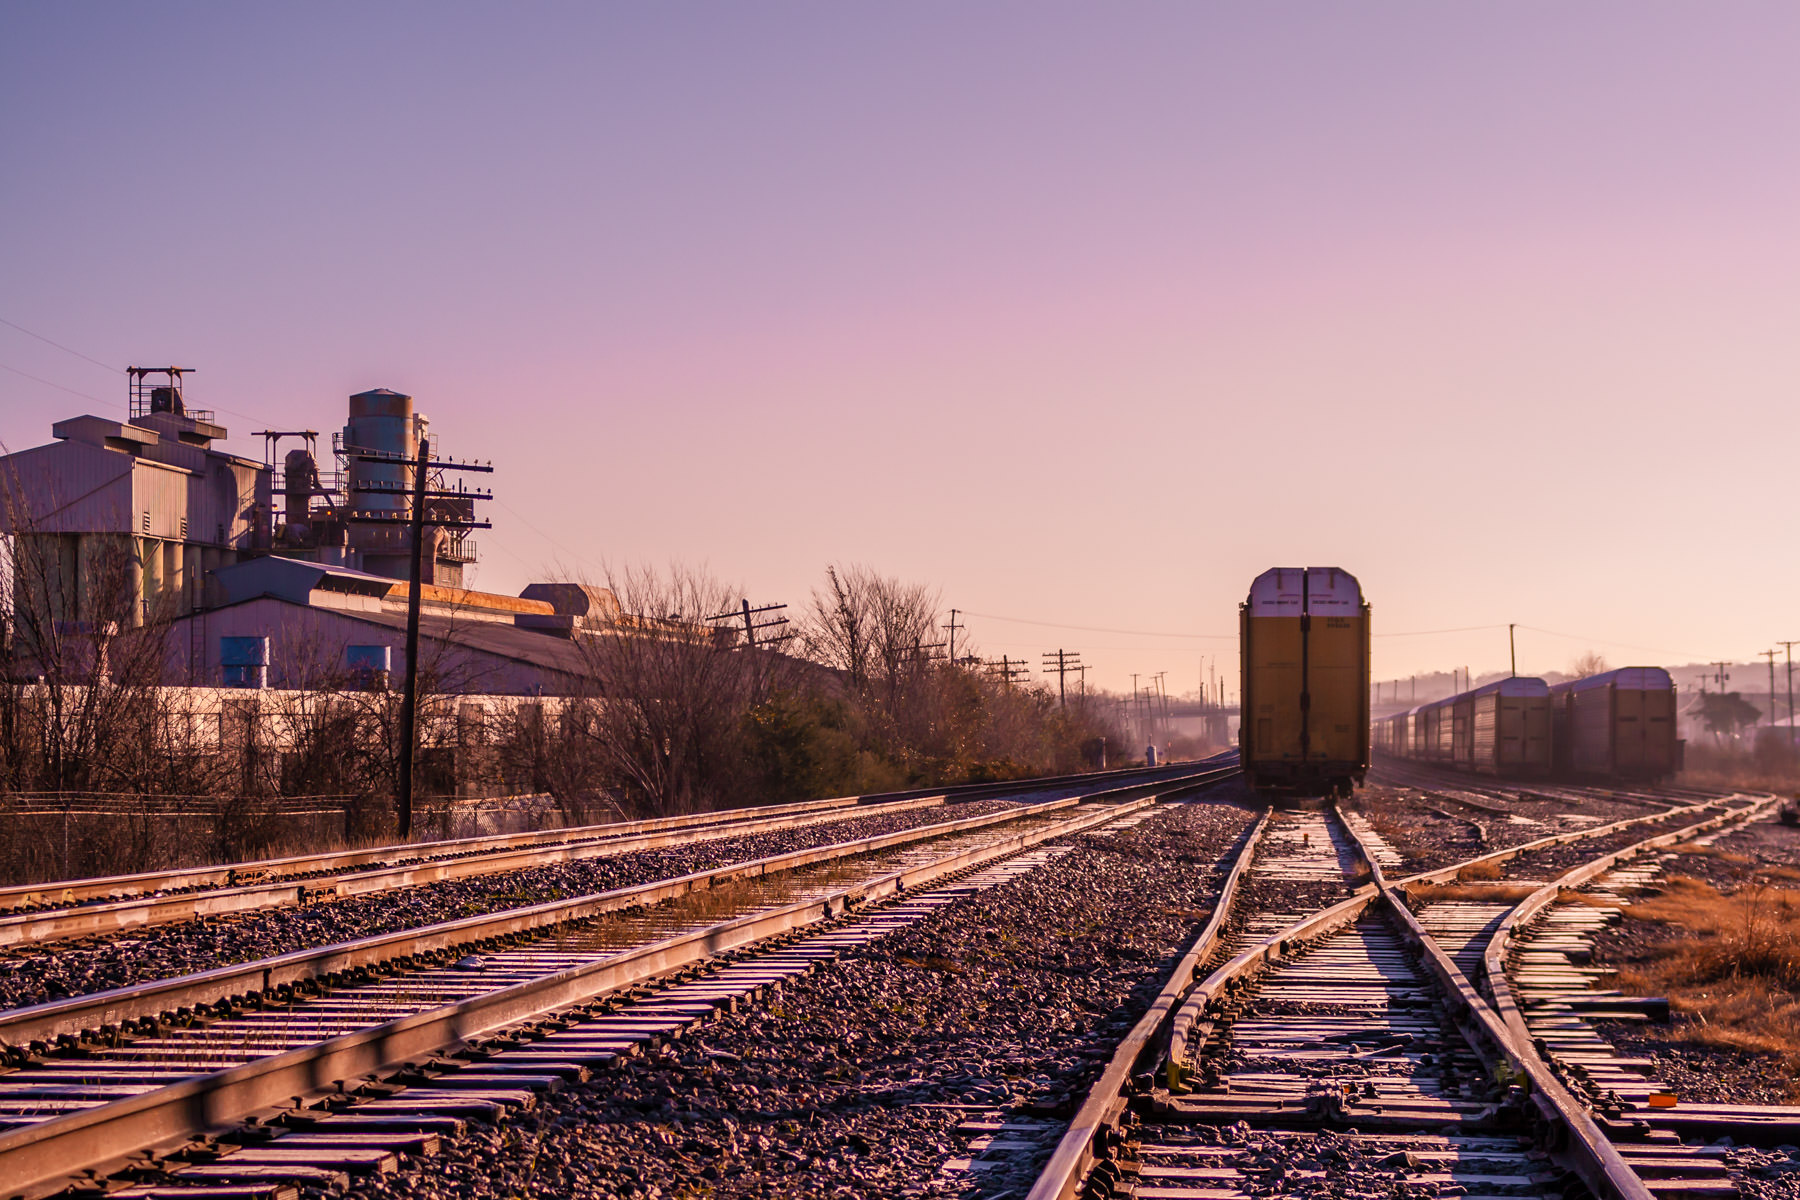 A small railroad switching yard in West Dallas, Texas.